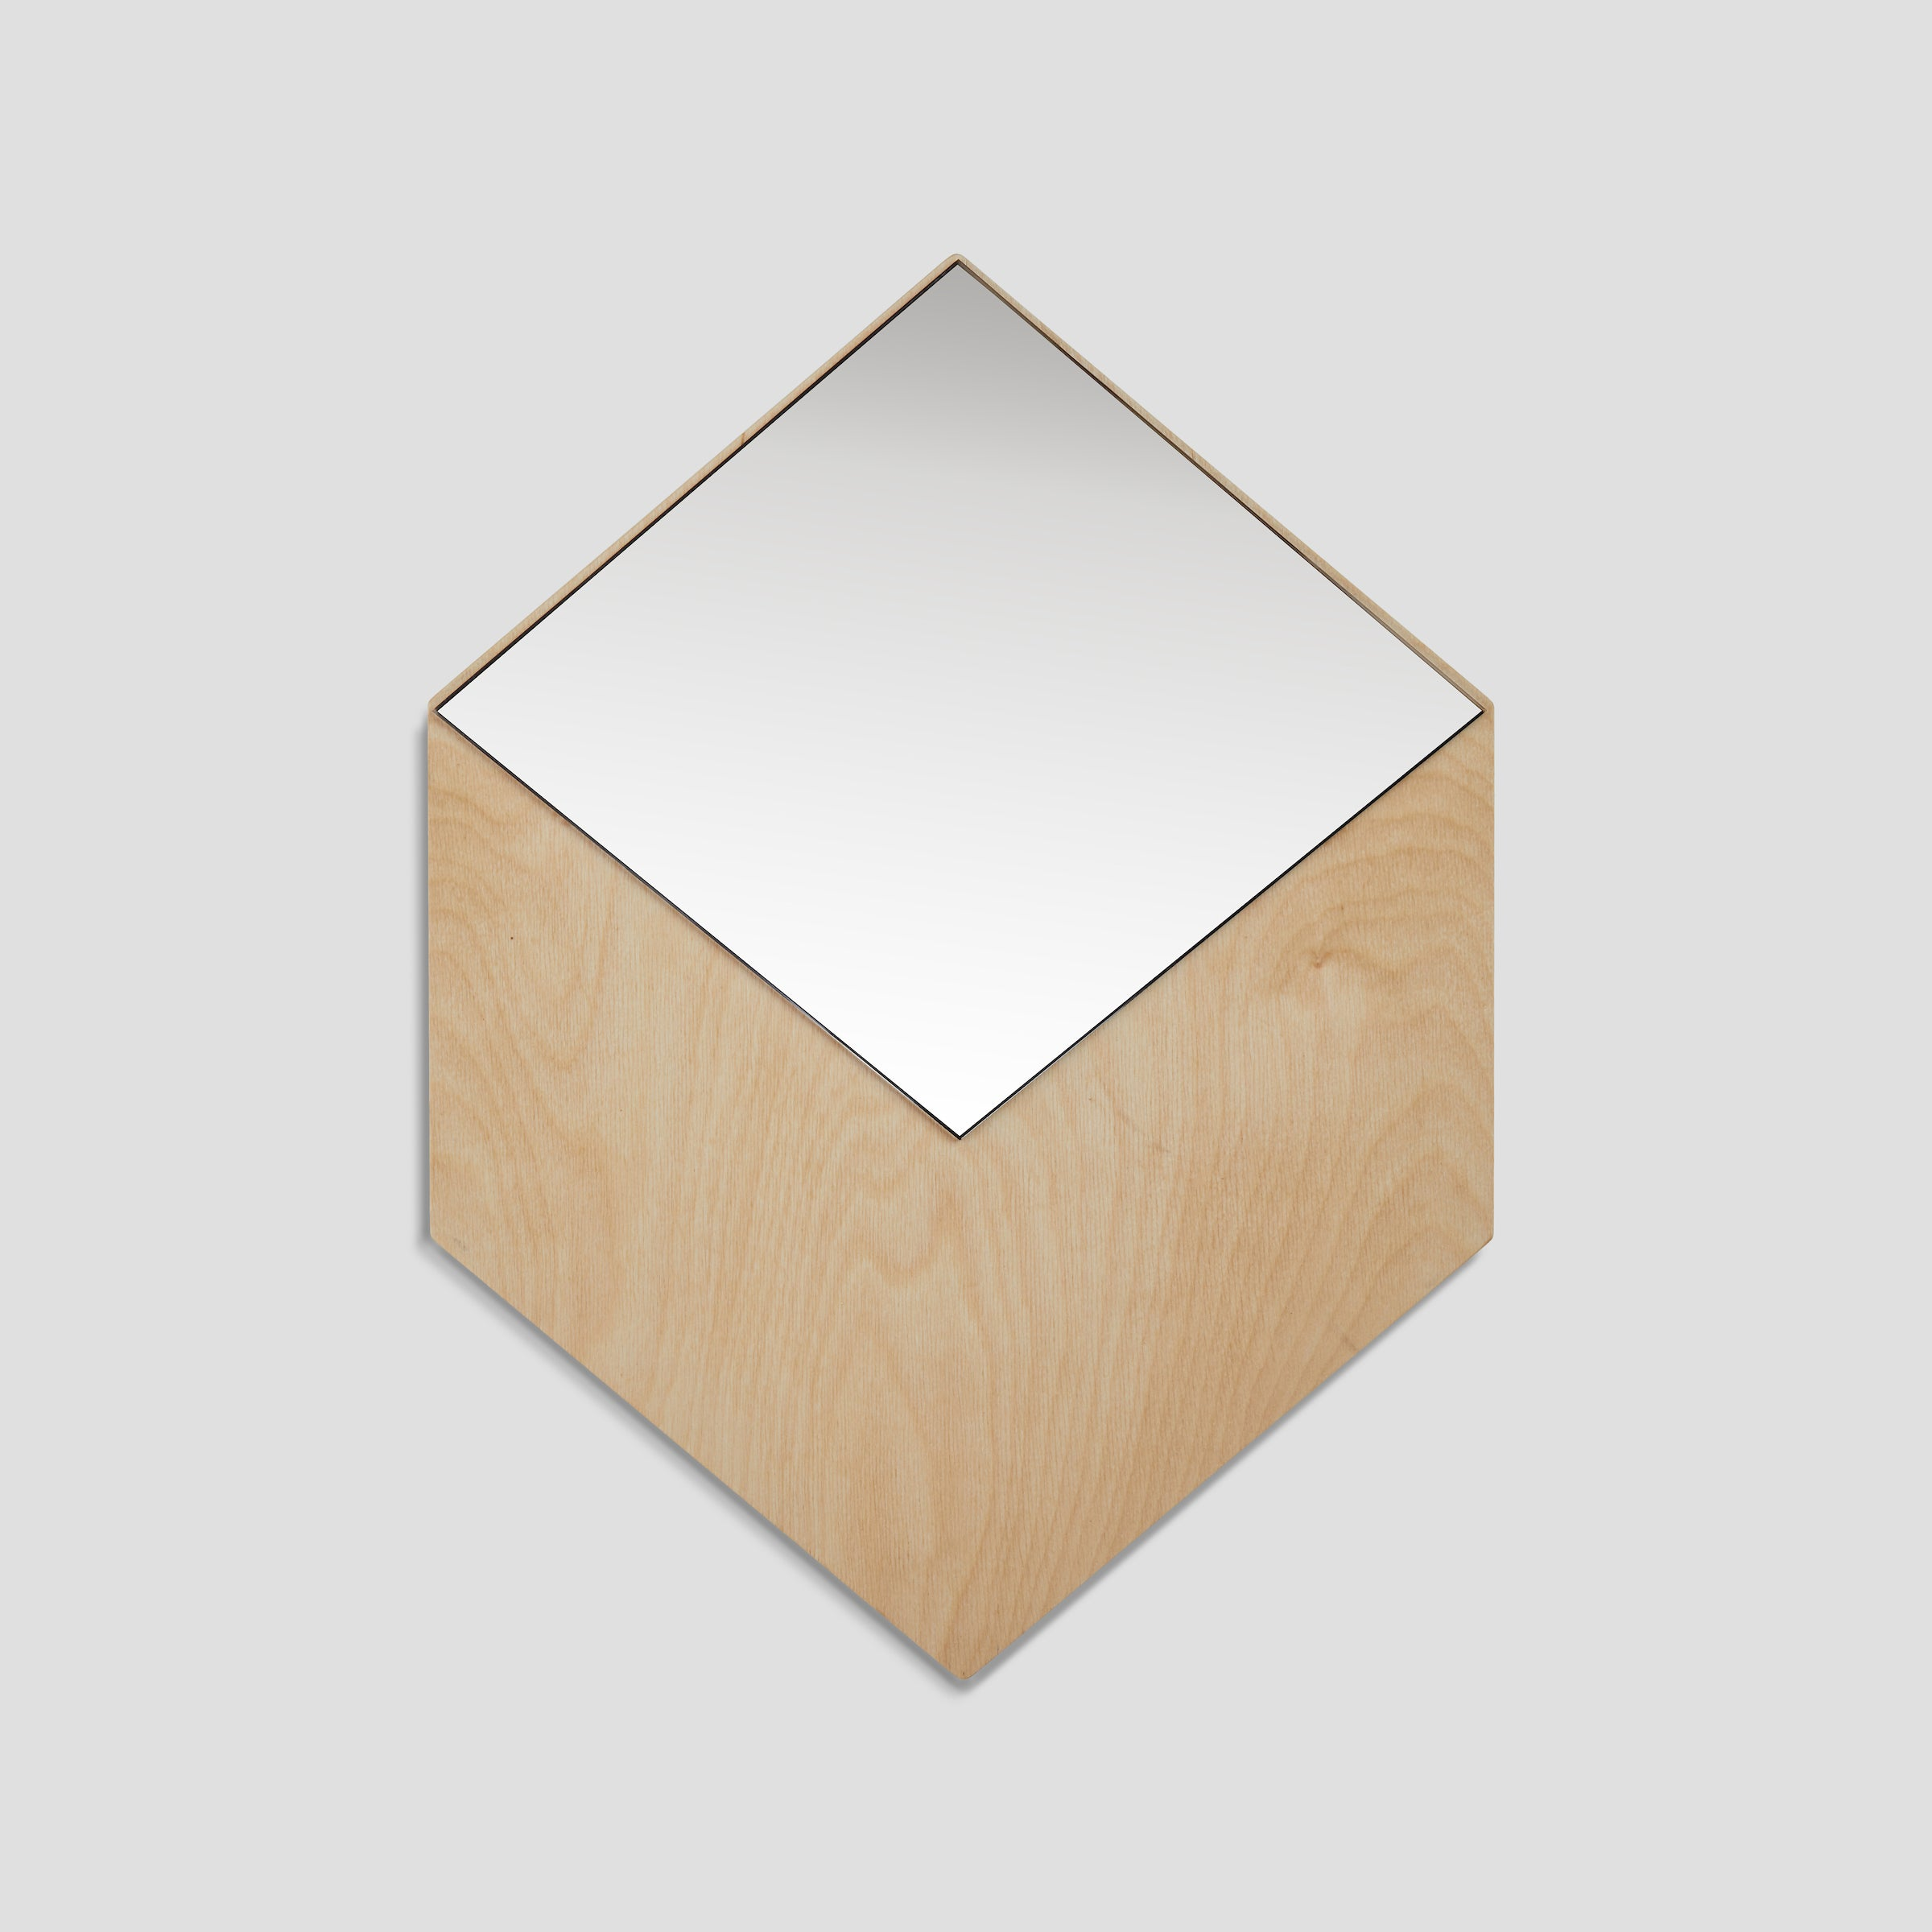 Front view of the modern minimalist CUBO mirror, bronze mirror mounted on a baltic birch plywood shaped as a three dimensional cube, available in two practical dimensions, easy mounting using keyhole slots, all mounting hardware included, designed and made in Montreal Canada.